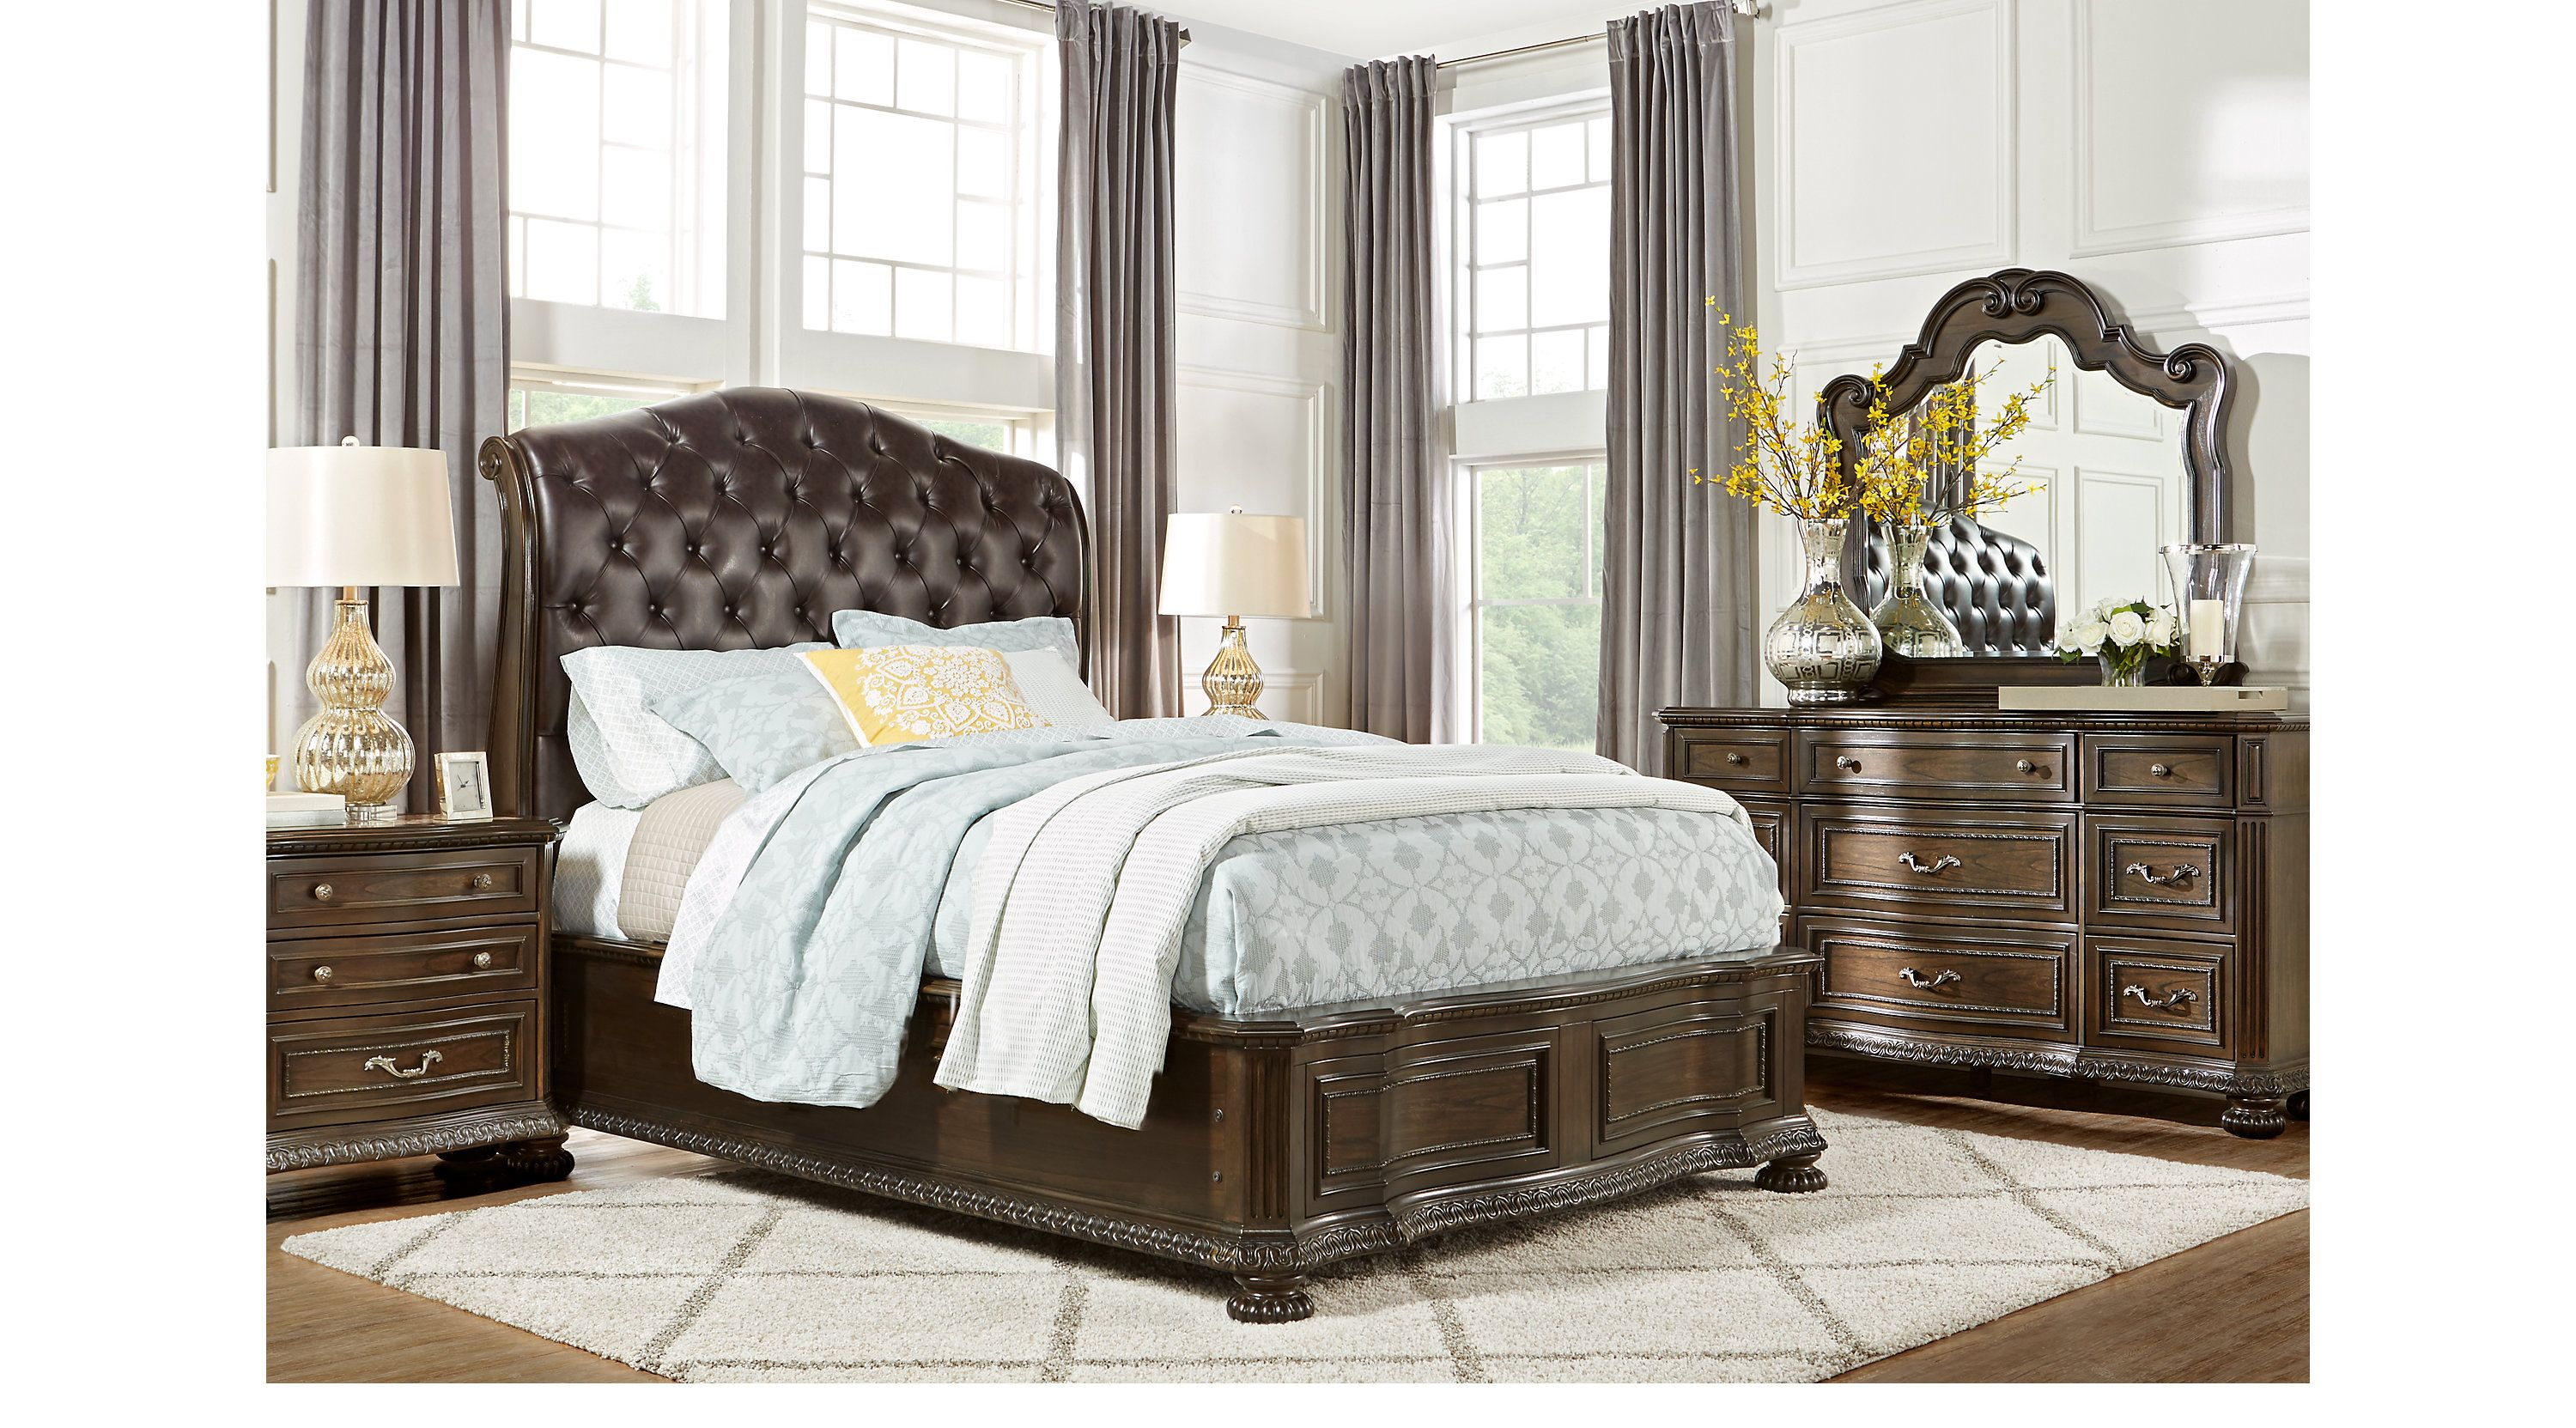 Whittington Cherry 5 Pc Queen Sleigh Bedroom | King size ...